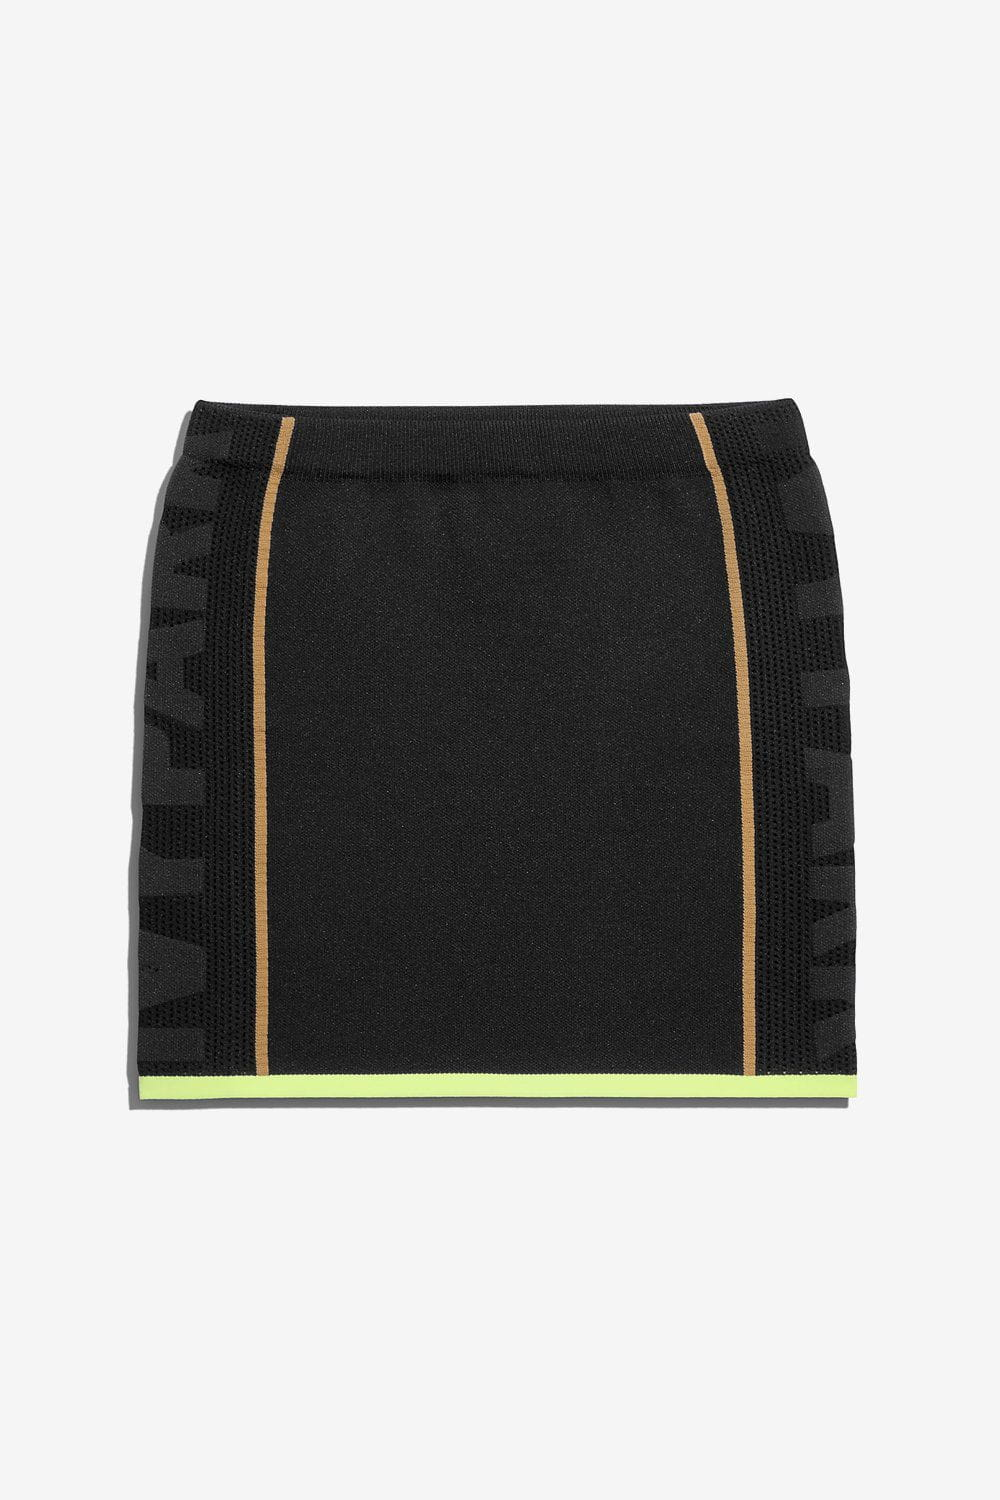 adidas Apparel IVY PARK x adidas Knit Skirt